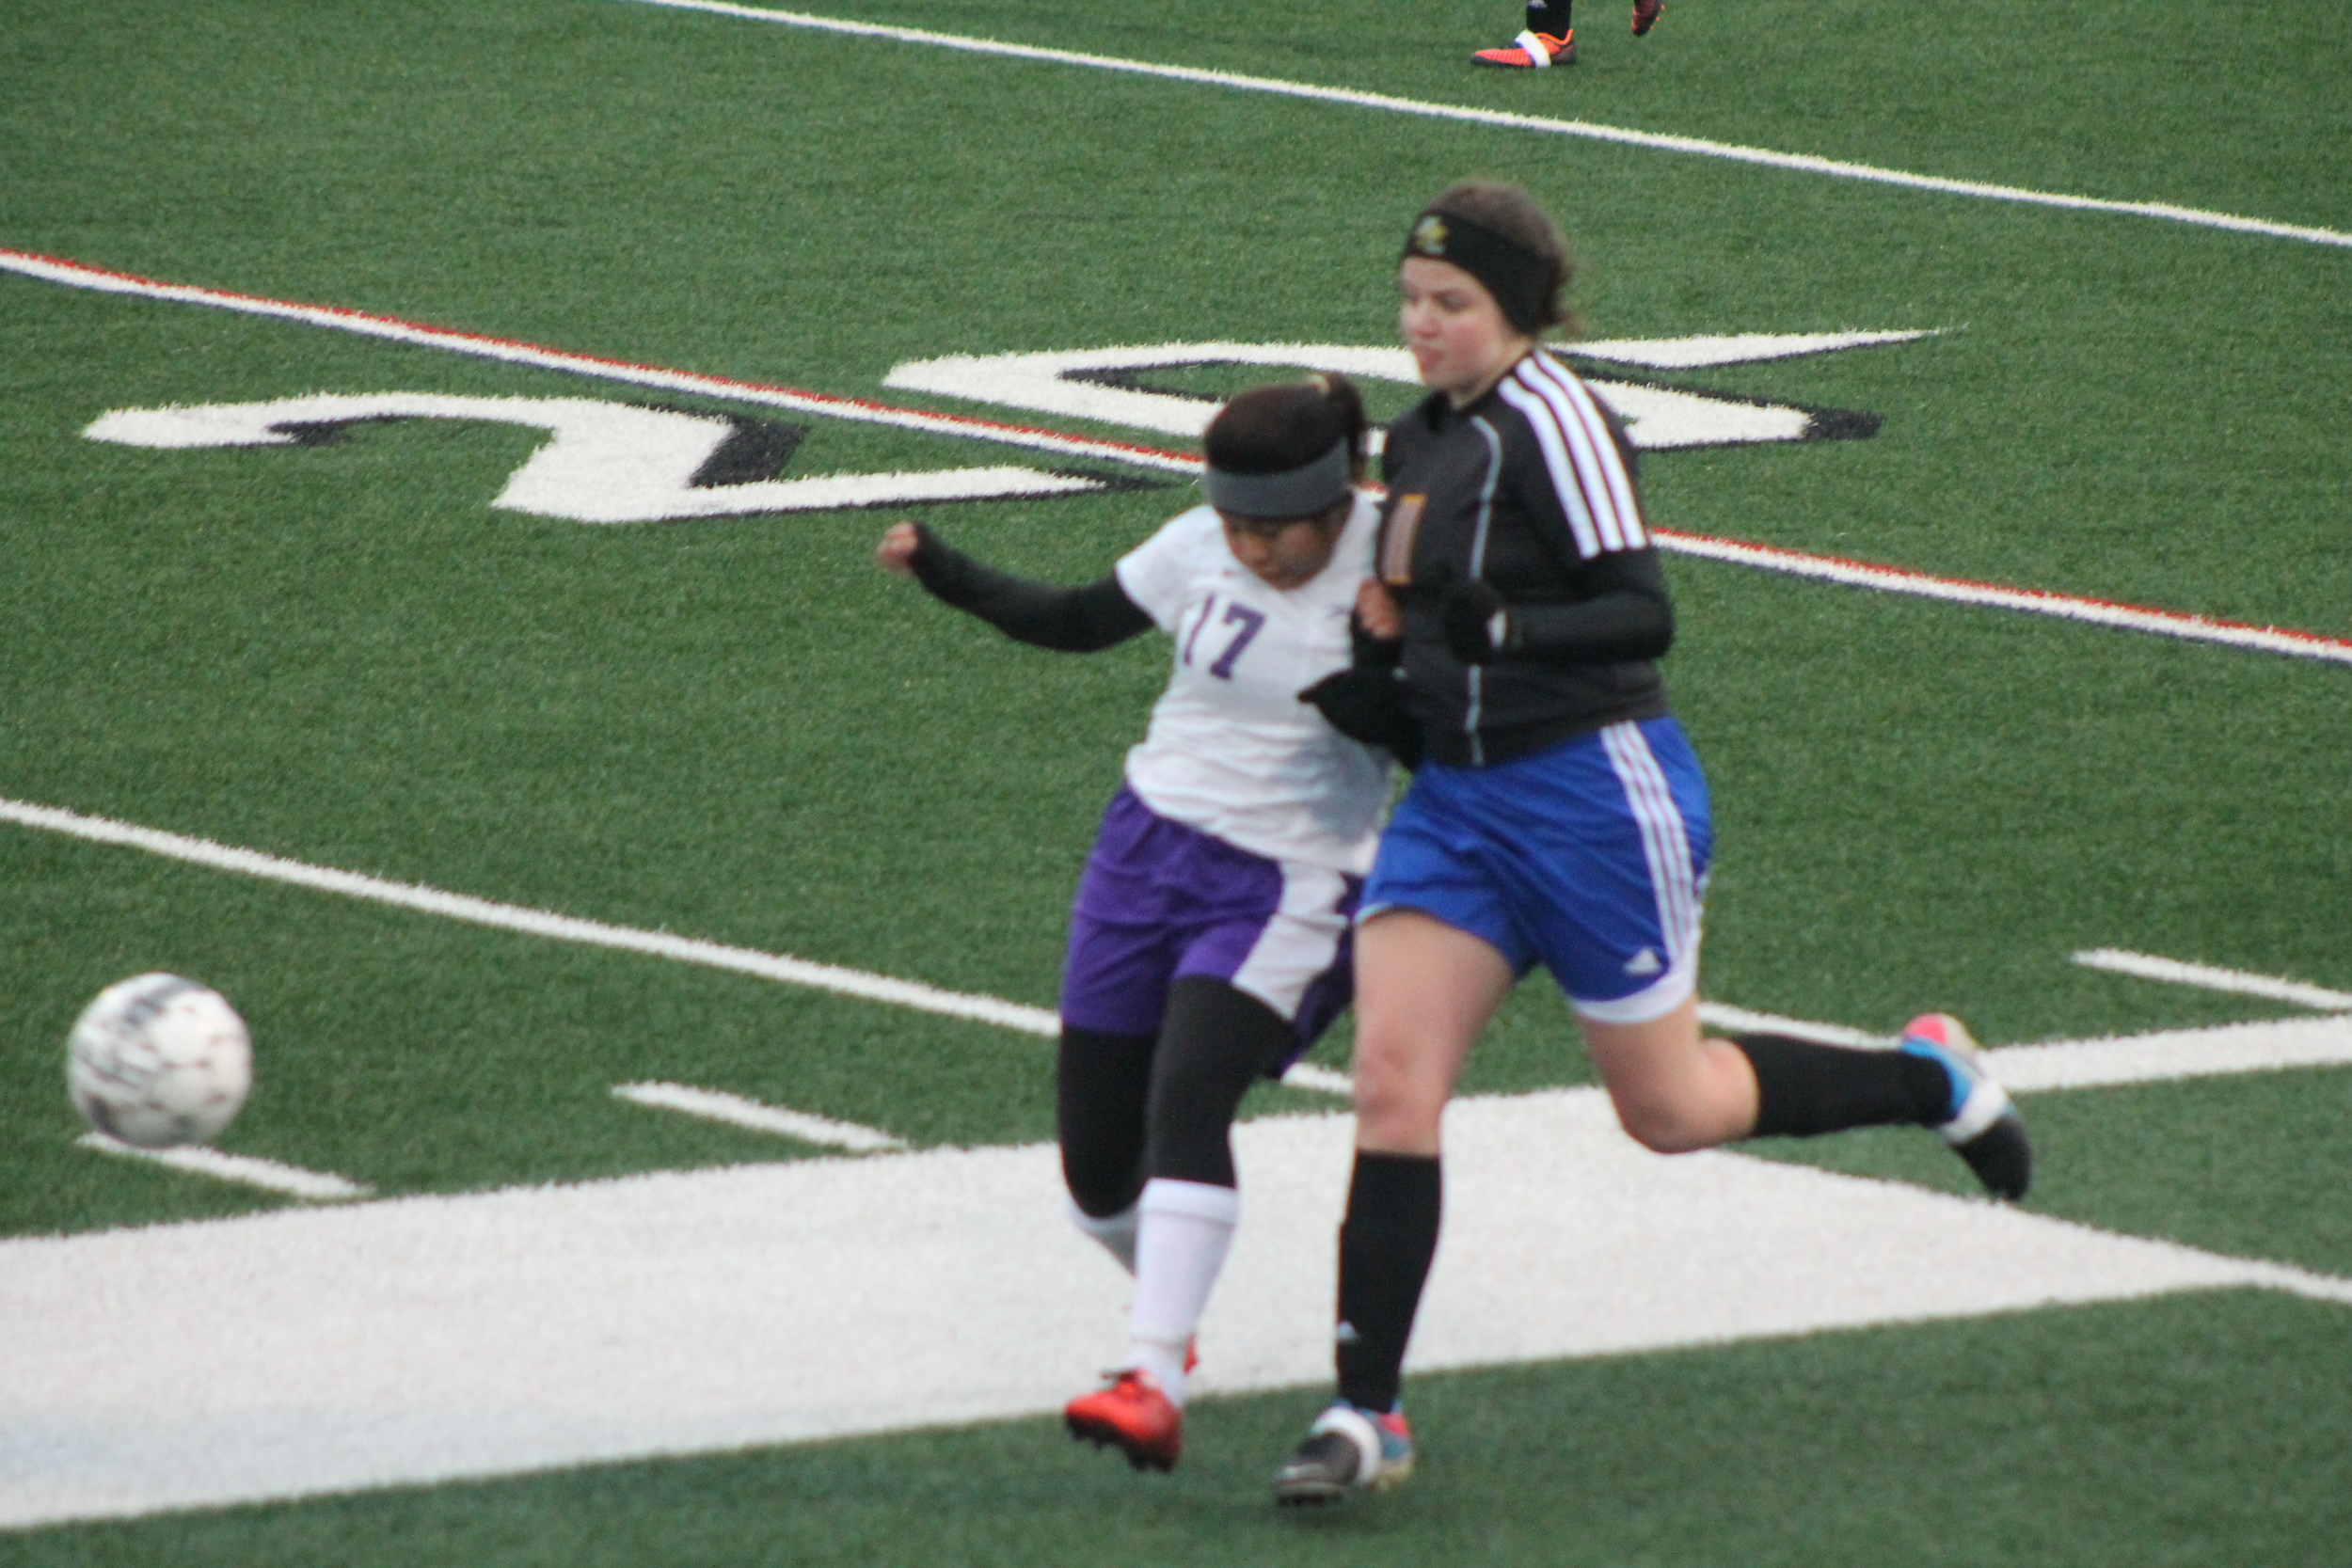 (Photo by Adam Routon) Claire Thompson fighting for position.